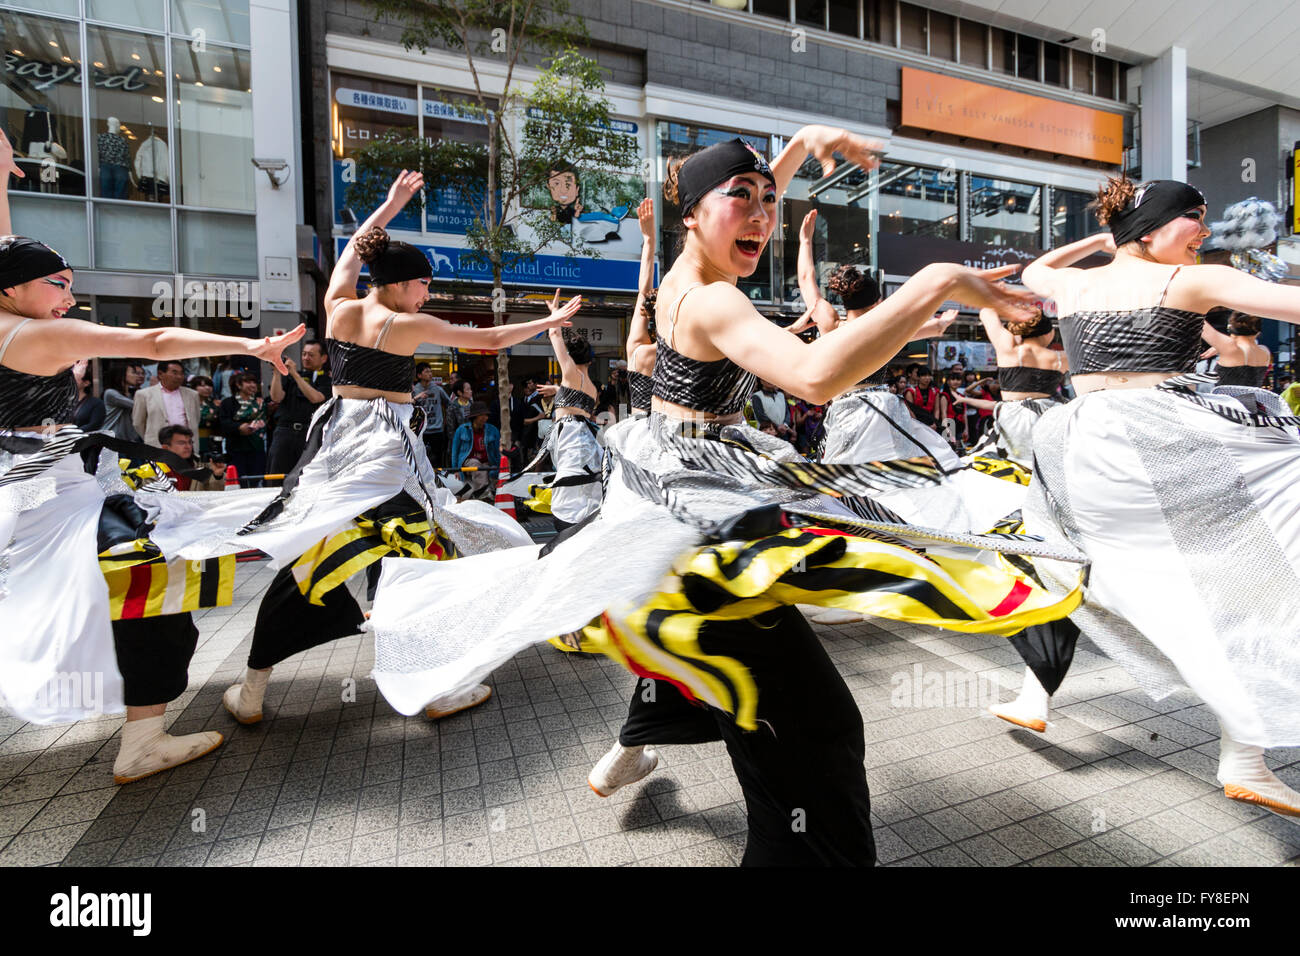 Japanese young women dance team in black and white costume formation dancing and skirts swirling, in shopping arcade - Stock Image